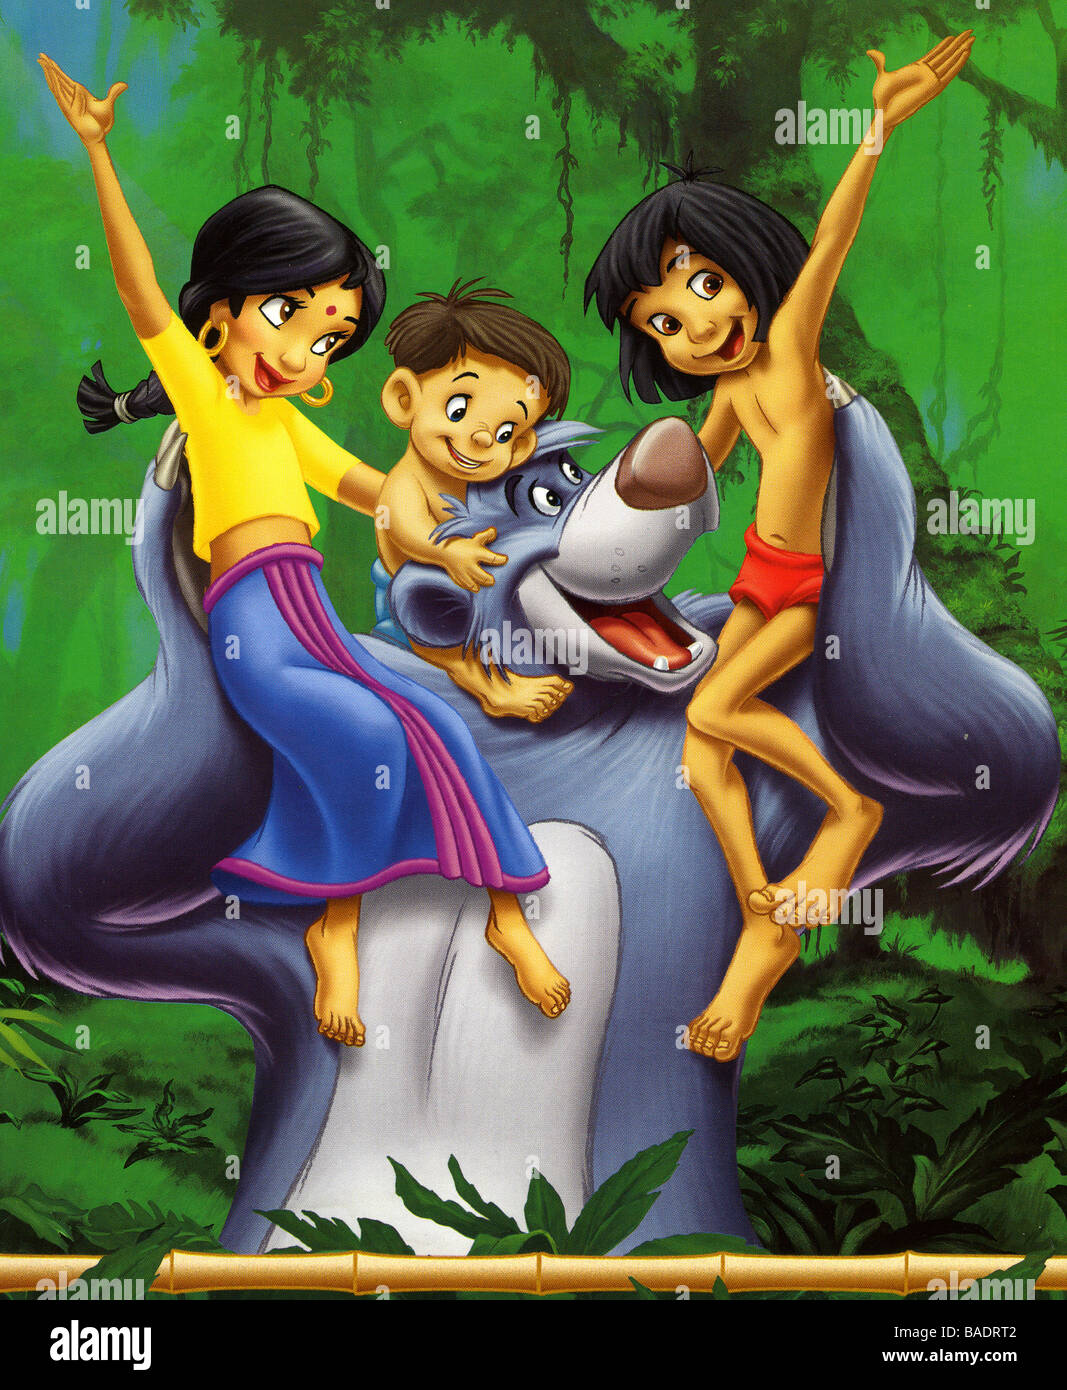 Which character from The Jungle Book 2 do you dislike? - Disney ...